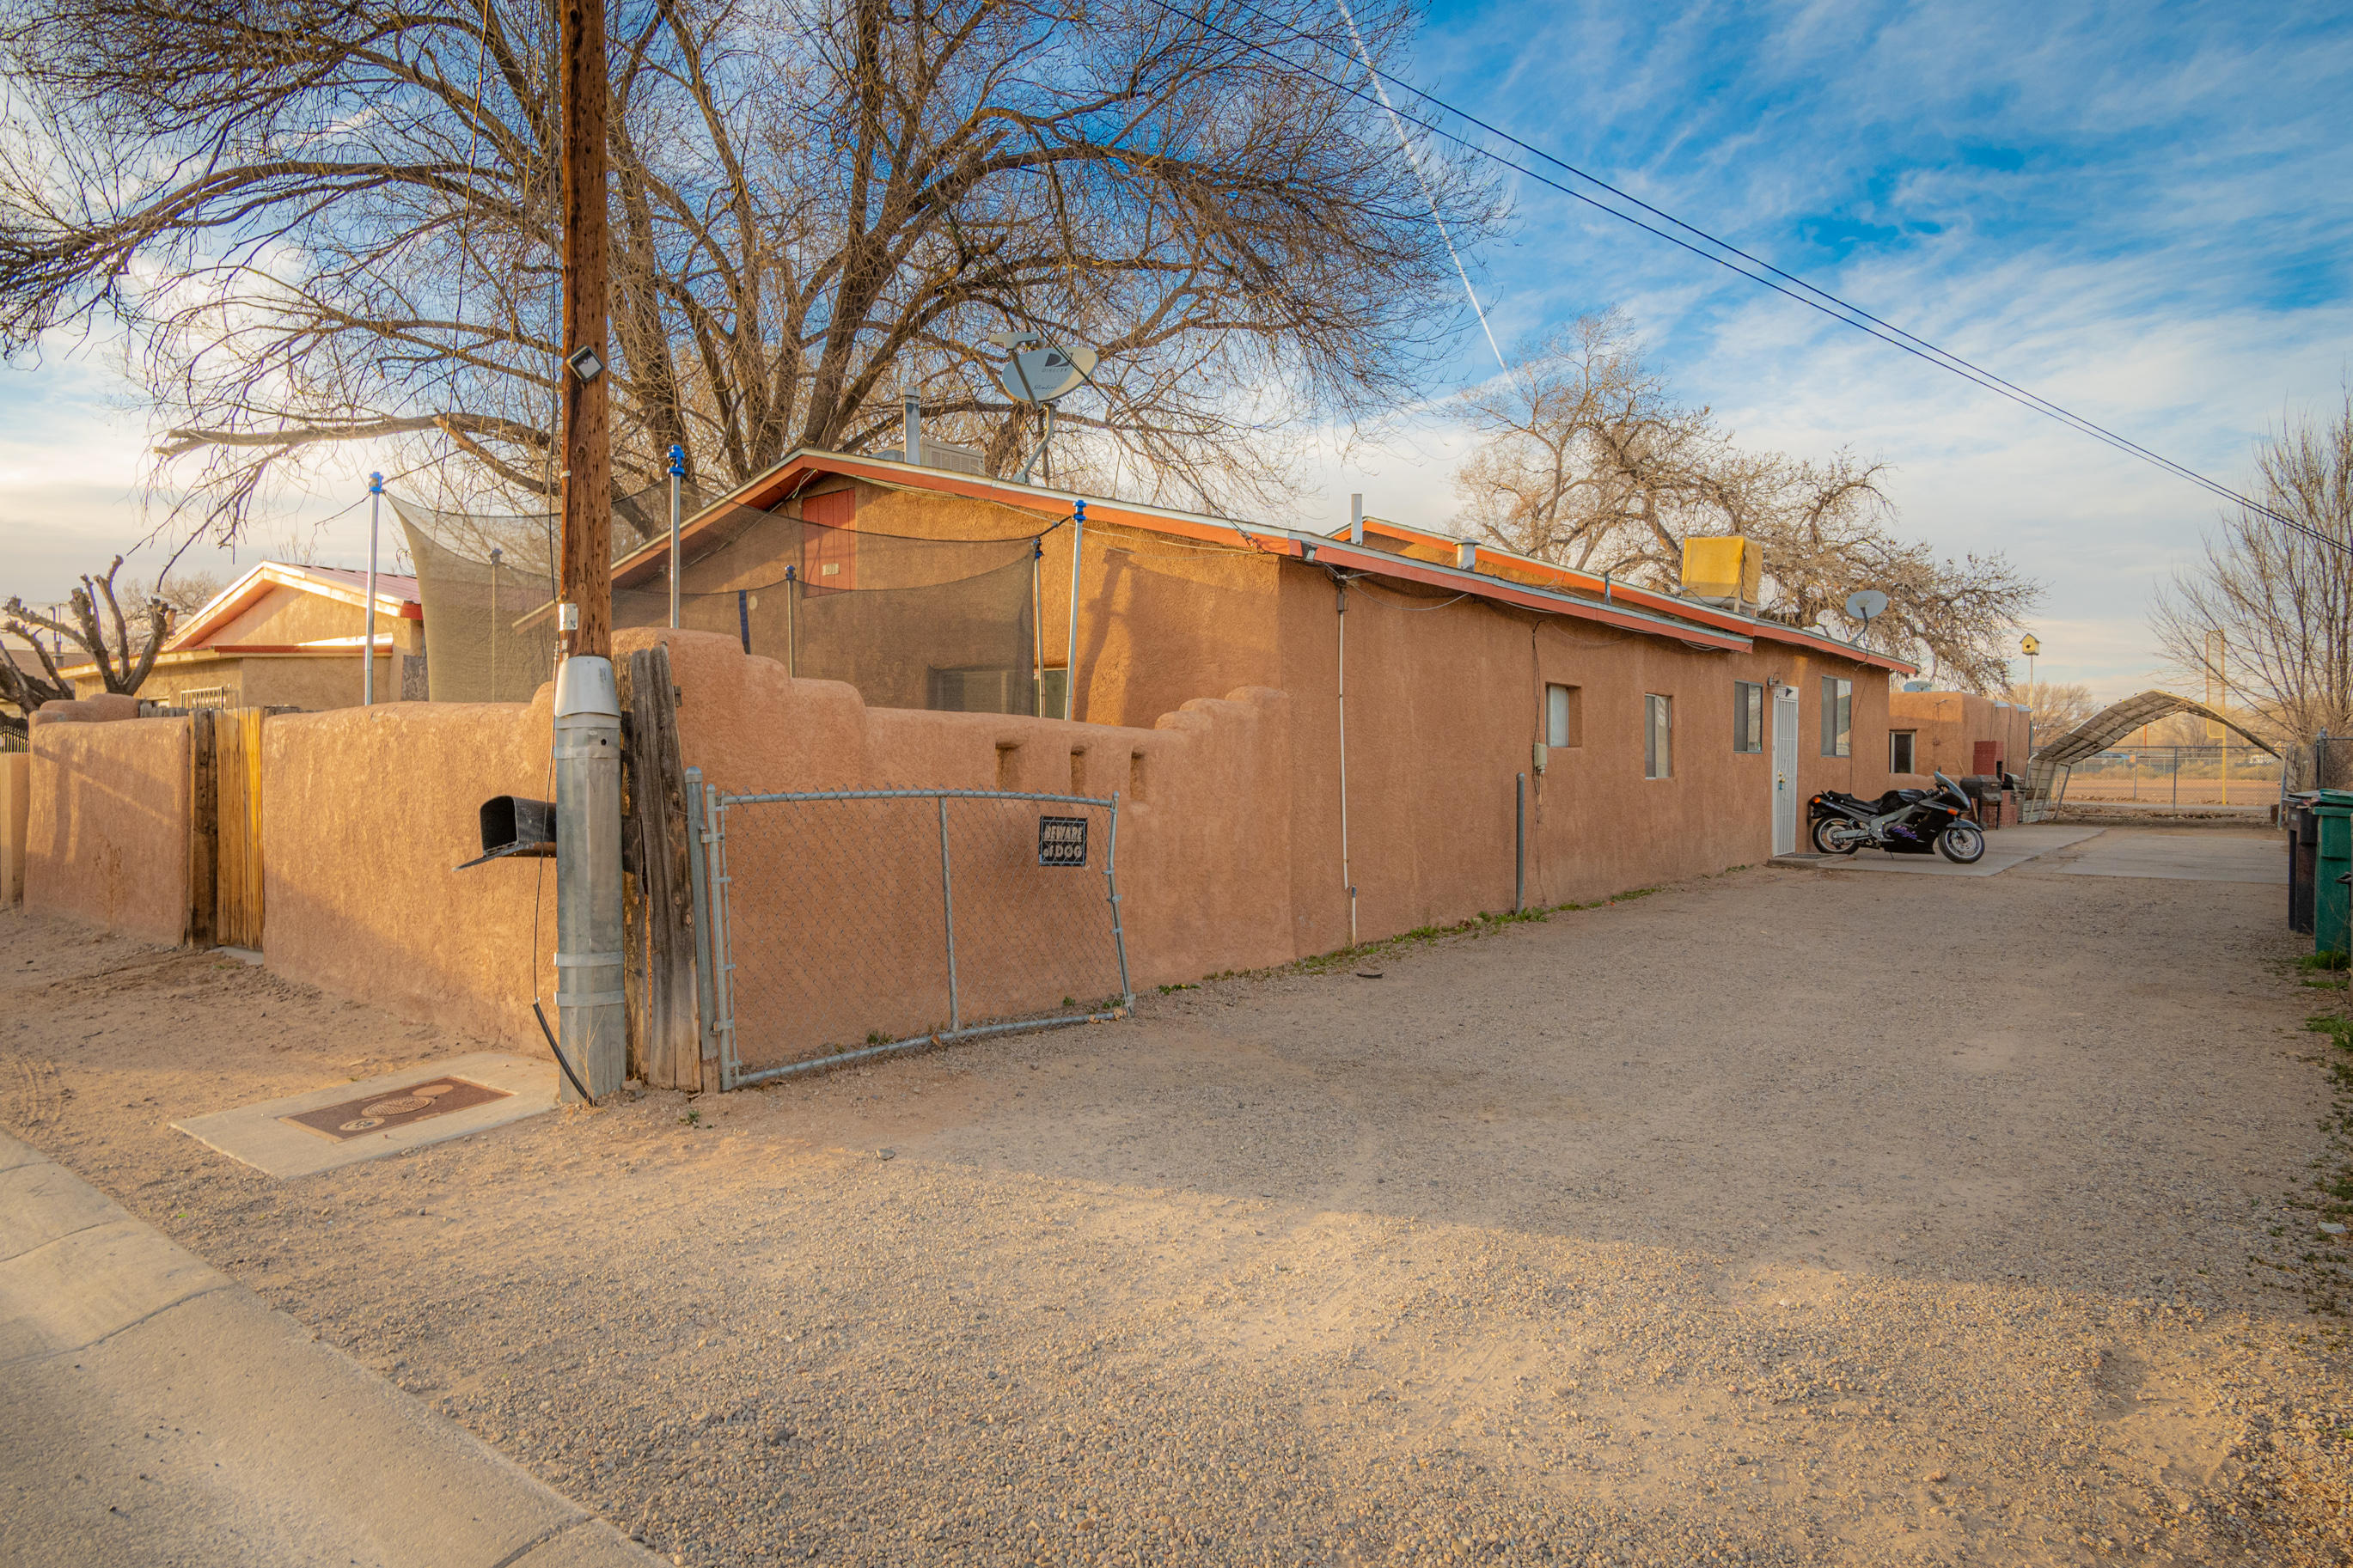 South Valley property with 2 Houses! Income generating property! Both houses are currently rented and separately metered. Please do not disturb tenants. We will arrange a showing with an accepted offer.